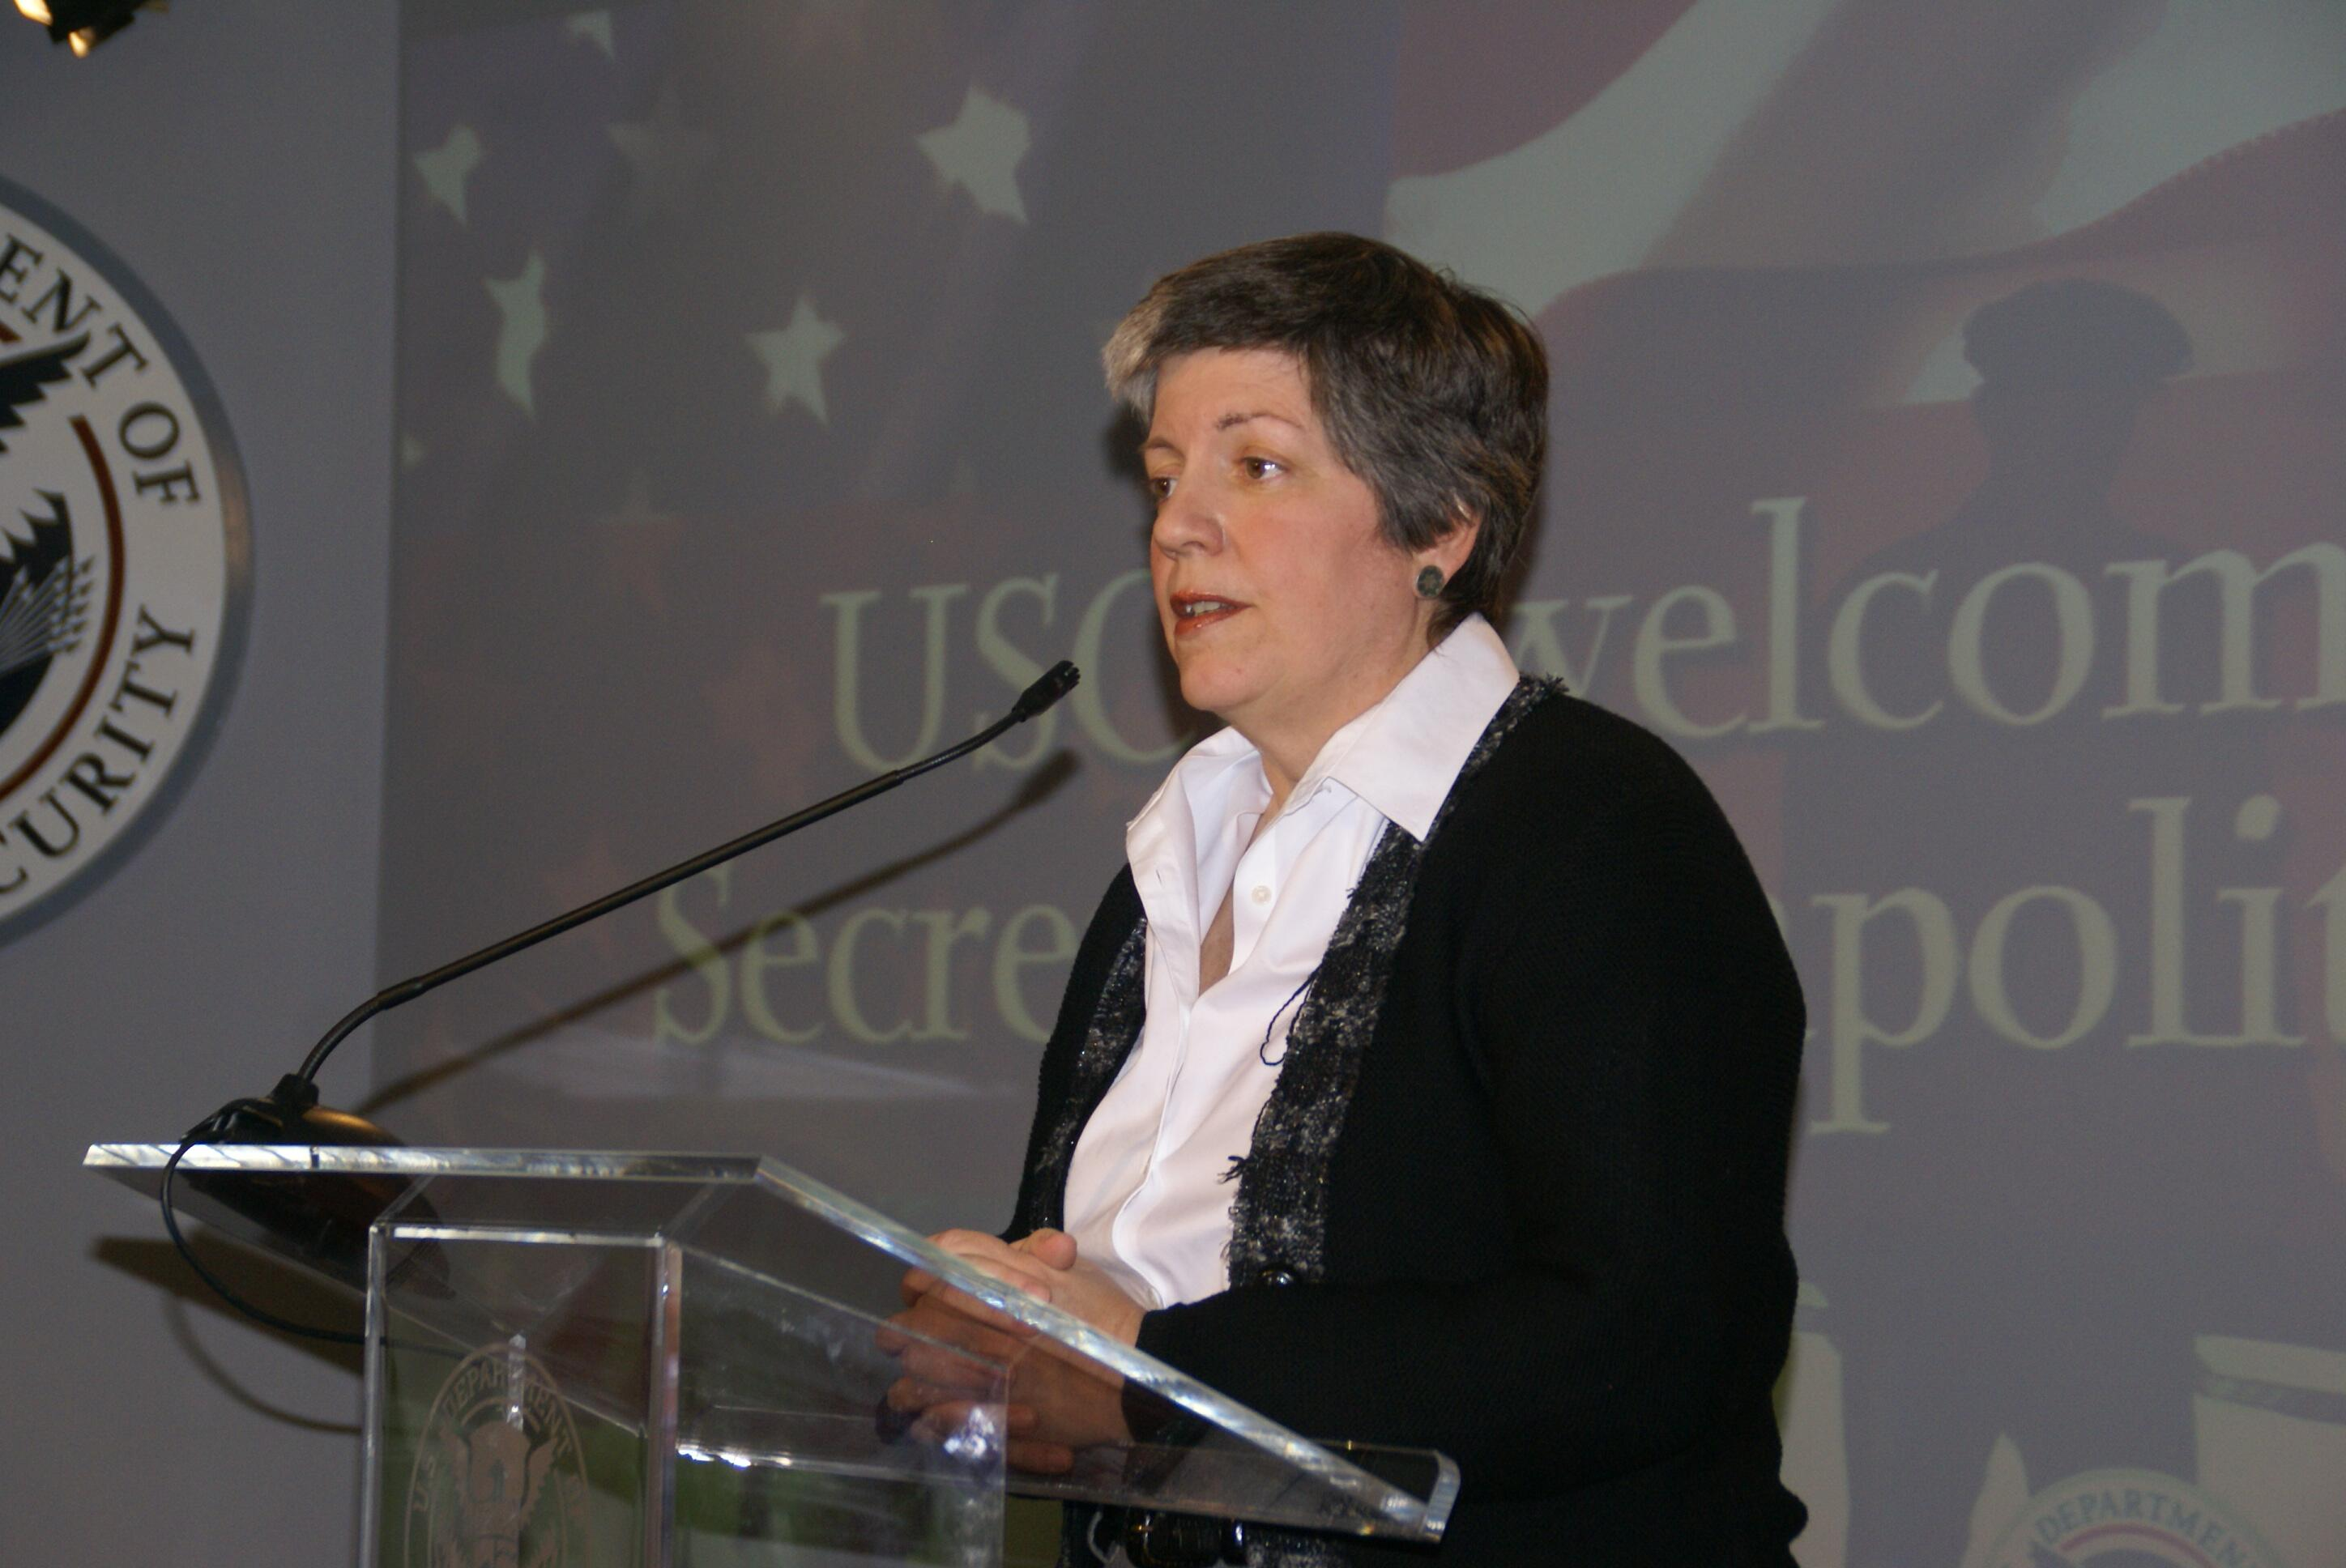 January 27, 2009 - Secretary of Homeland Security Napolitano greets employees at U.S. Citizenship and Immigration Services headquarters in Washington, D.C. where she receives briefings from the three USCIS directorates.  (USCIS Photo/Buckson)